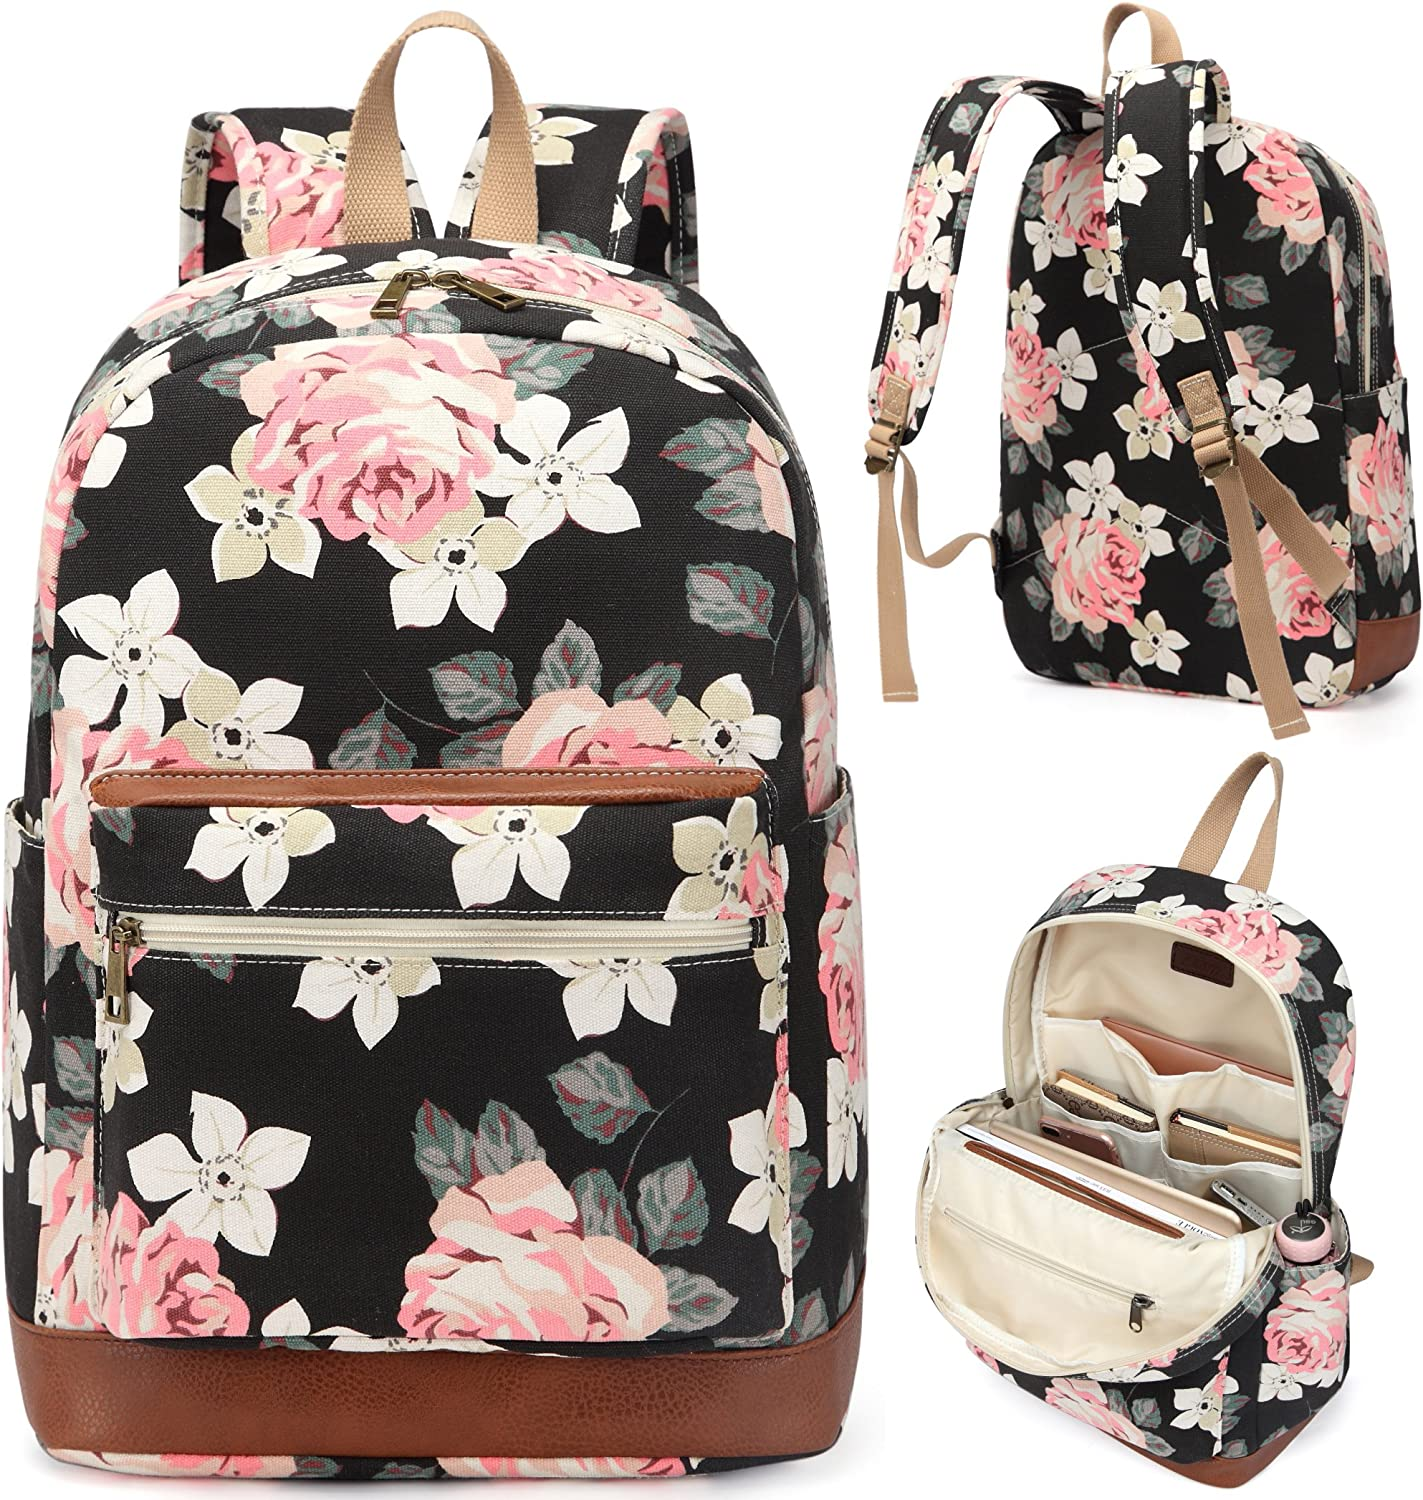 Kenox Girl s School Rucksack College Bookbag Lady Travel Backpack 14Inch Laptop Bag Floral